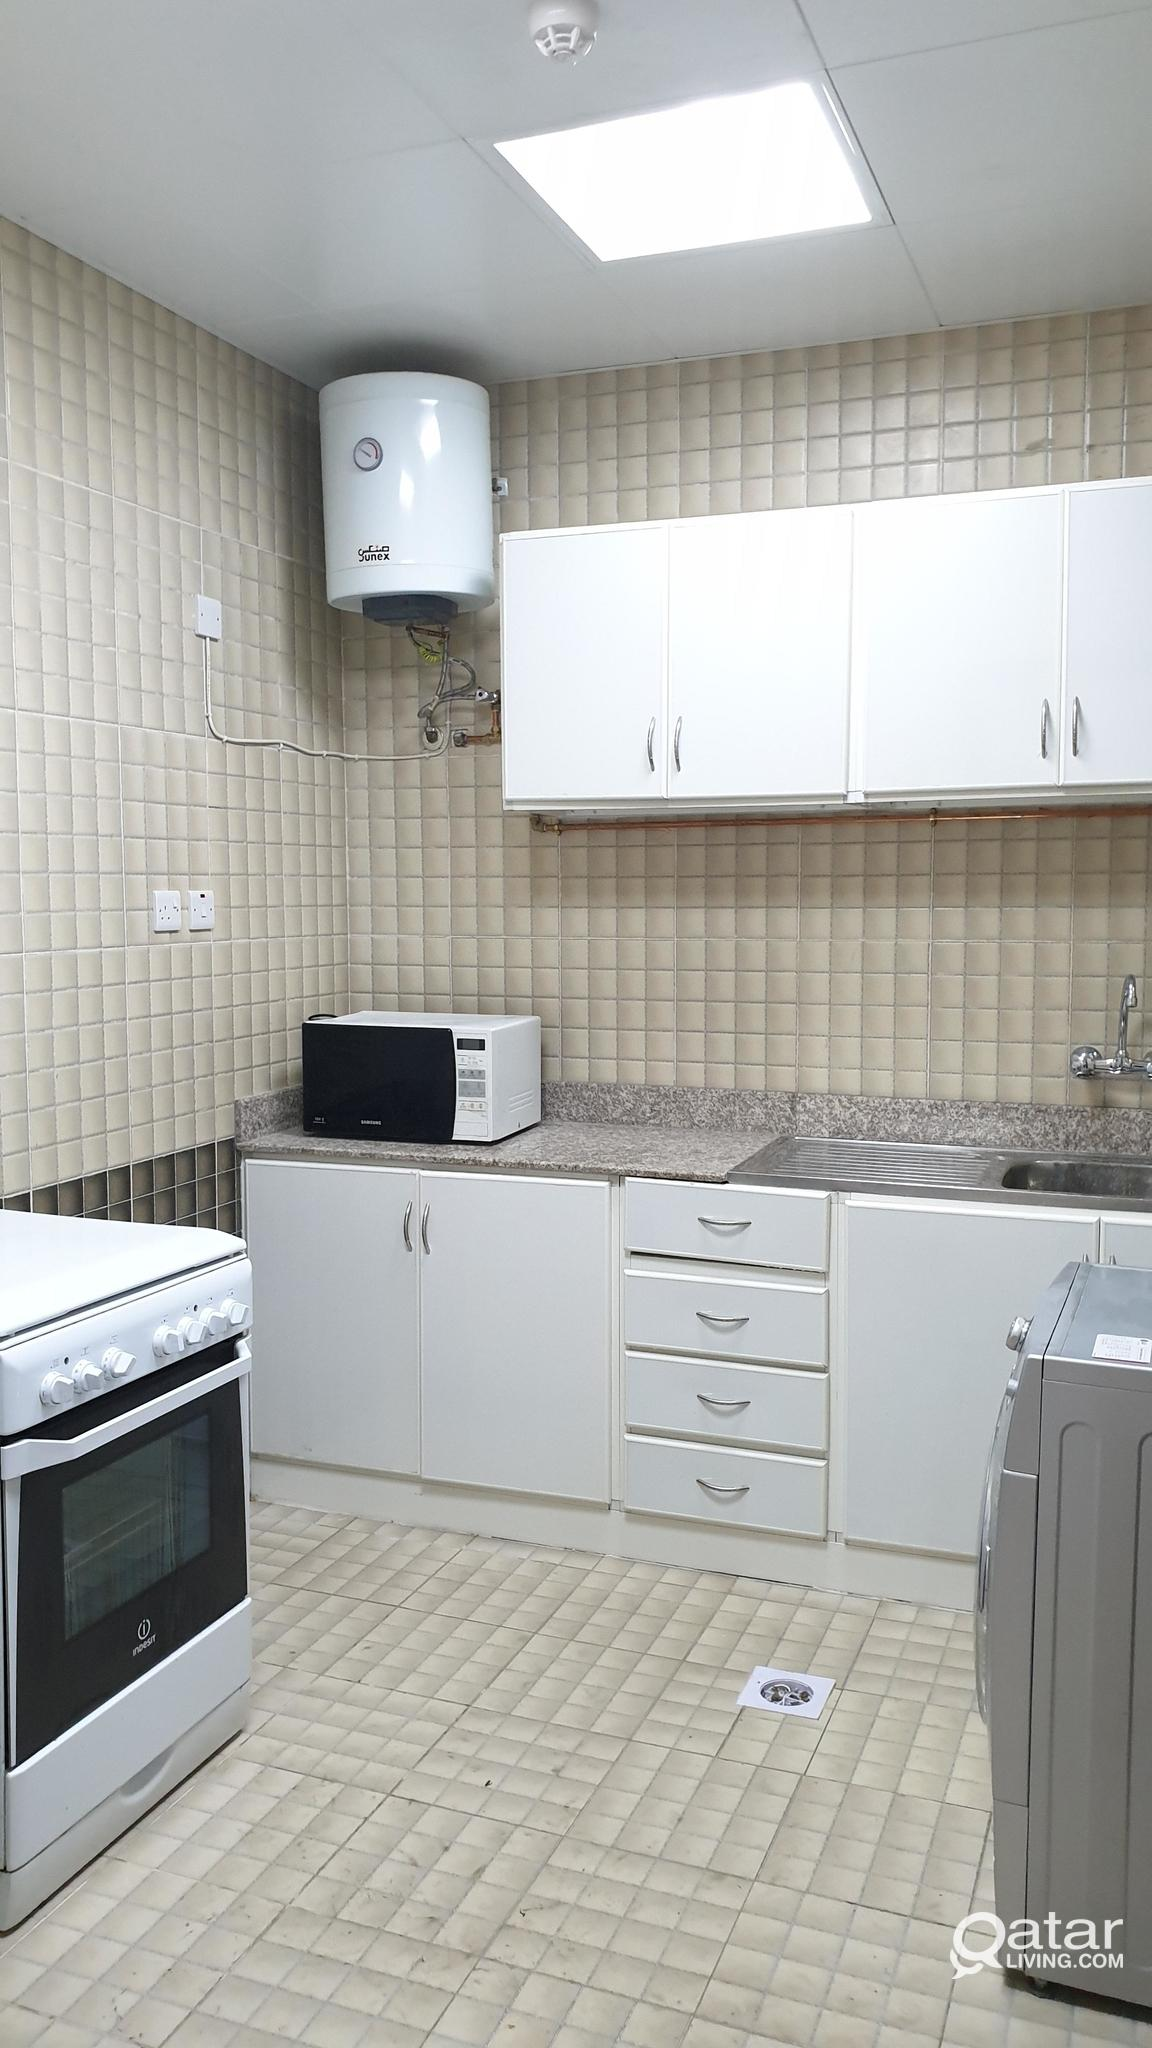 !! BRAND NEW SPACIOUS UNFURNISHED 2 BED ROOM IN MA